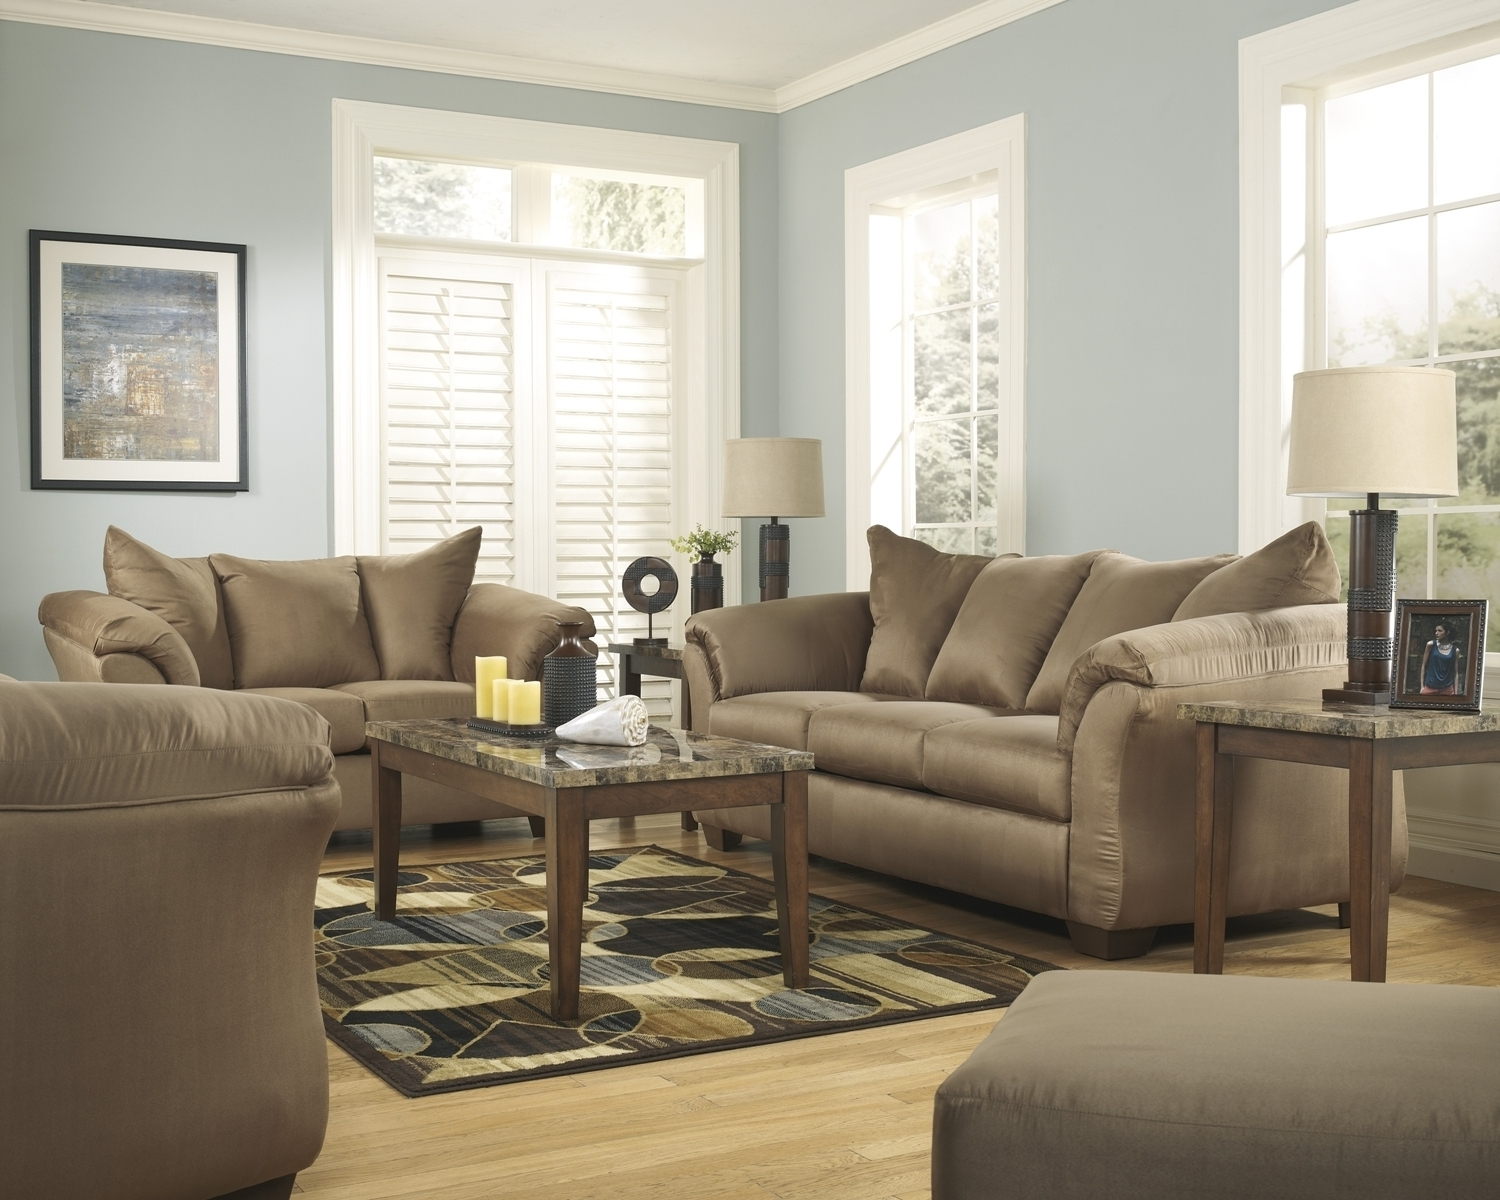 Preferred Color Fabric Sofaashley Throughout Fabric Sofas (View 18 of 20)